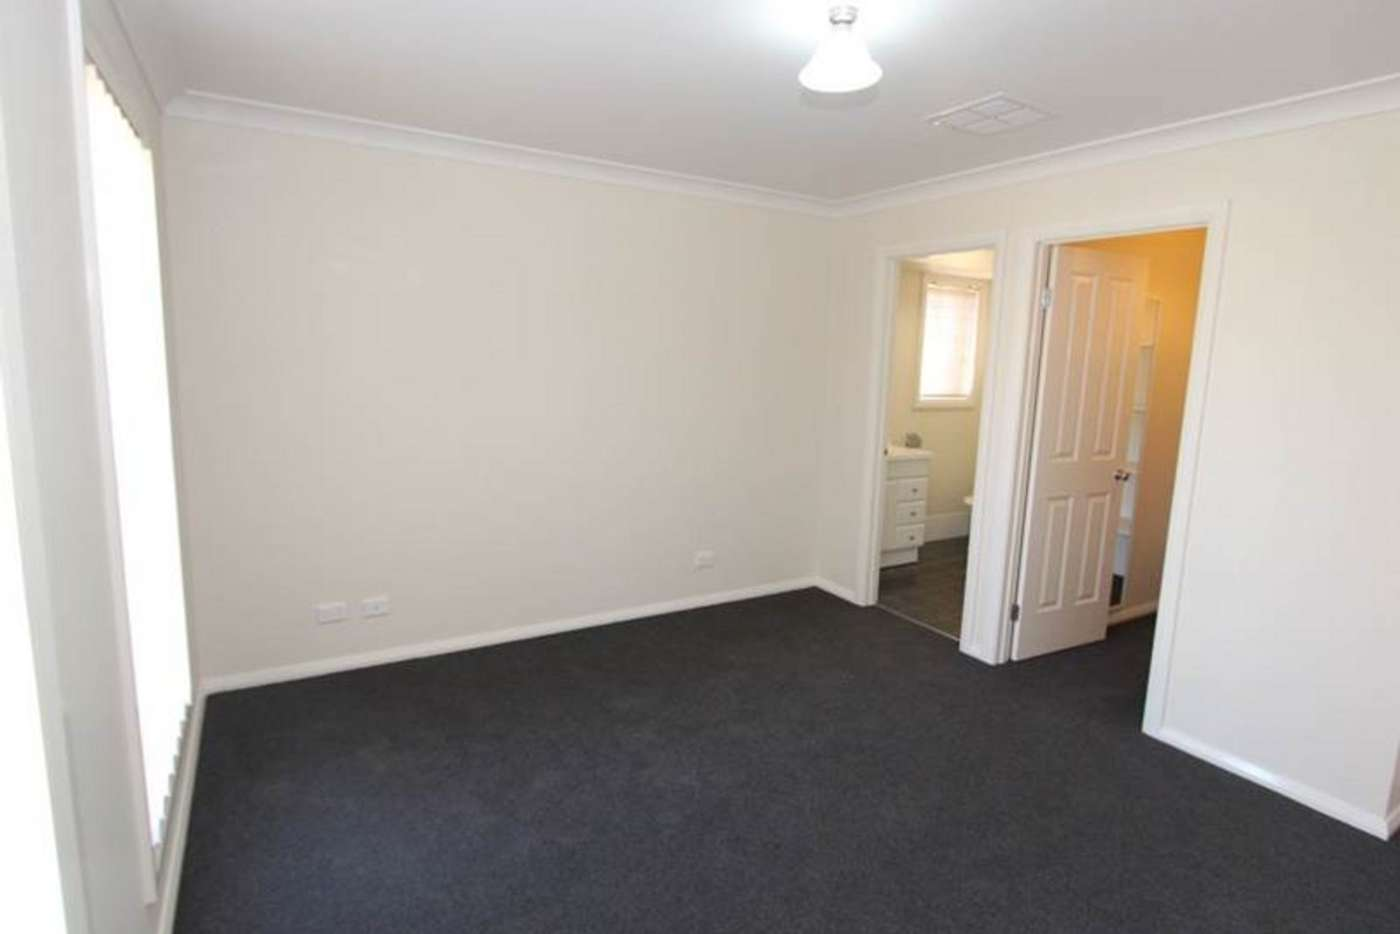 Sixth view of Homely house listing, 36 Barrima Drive, Glenfield Park NSW 2650